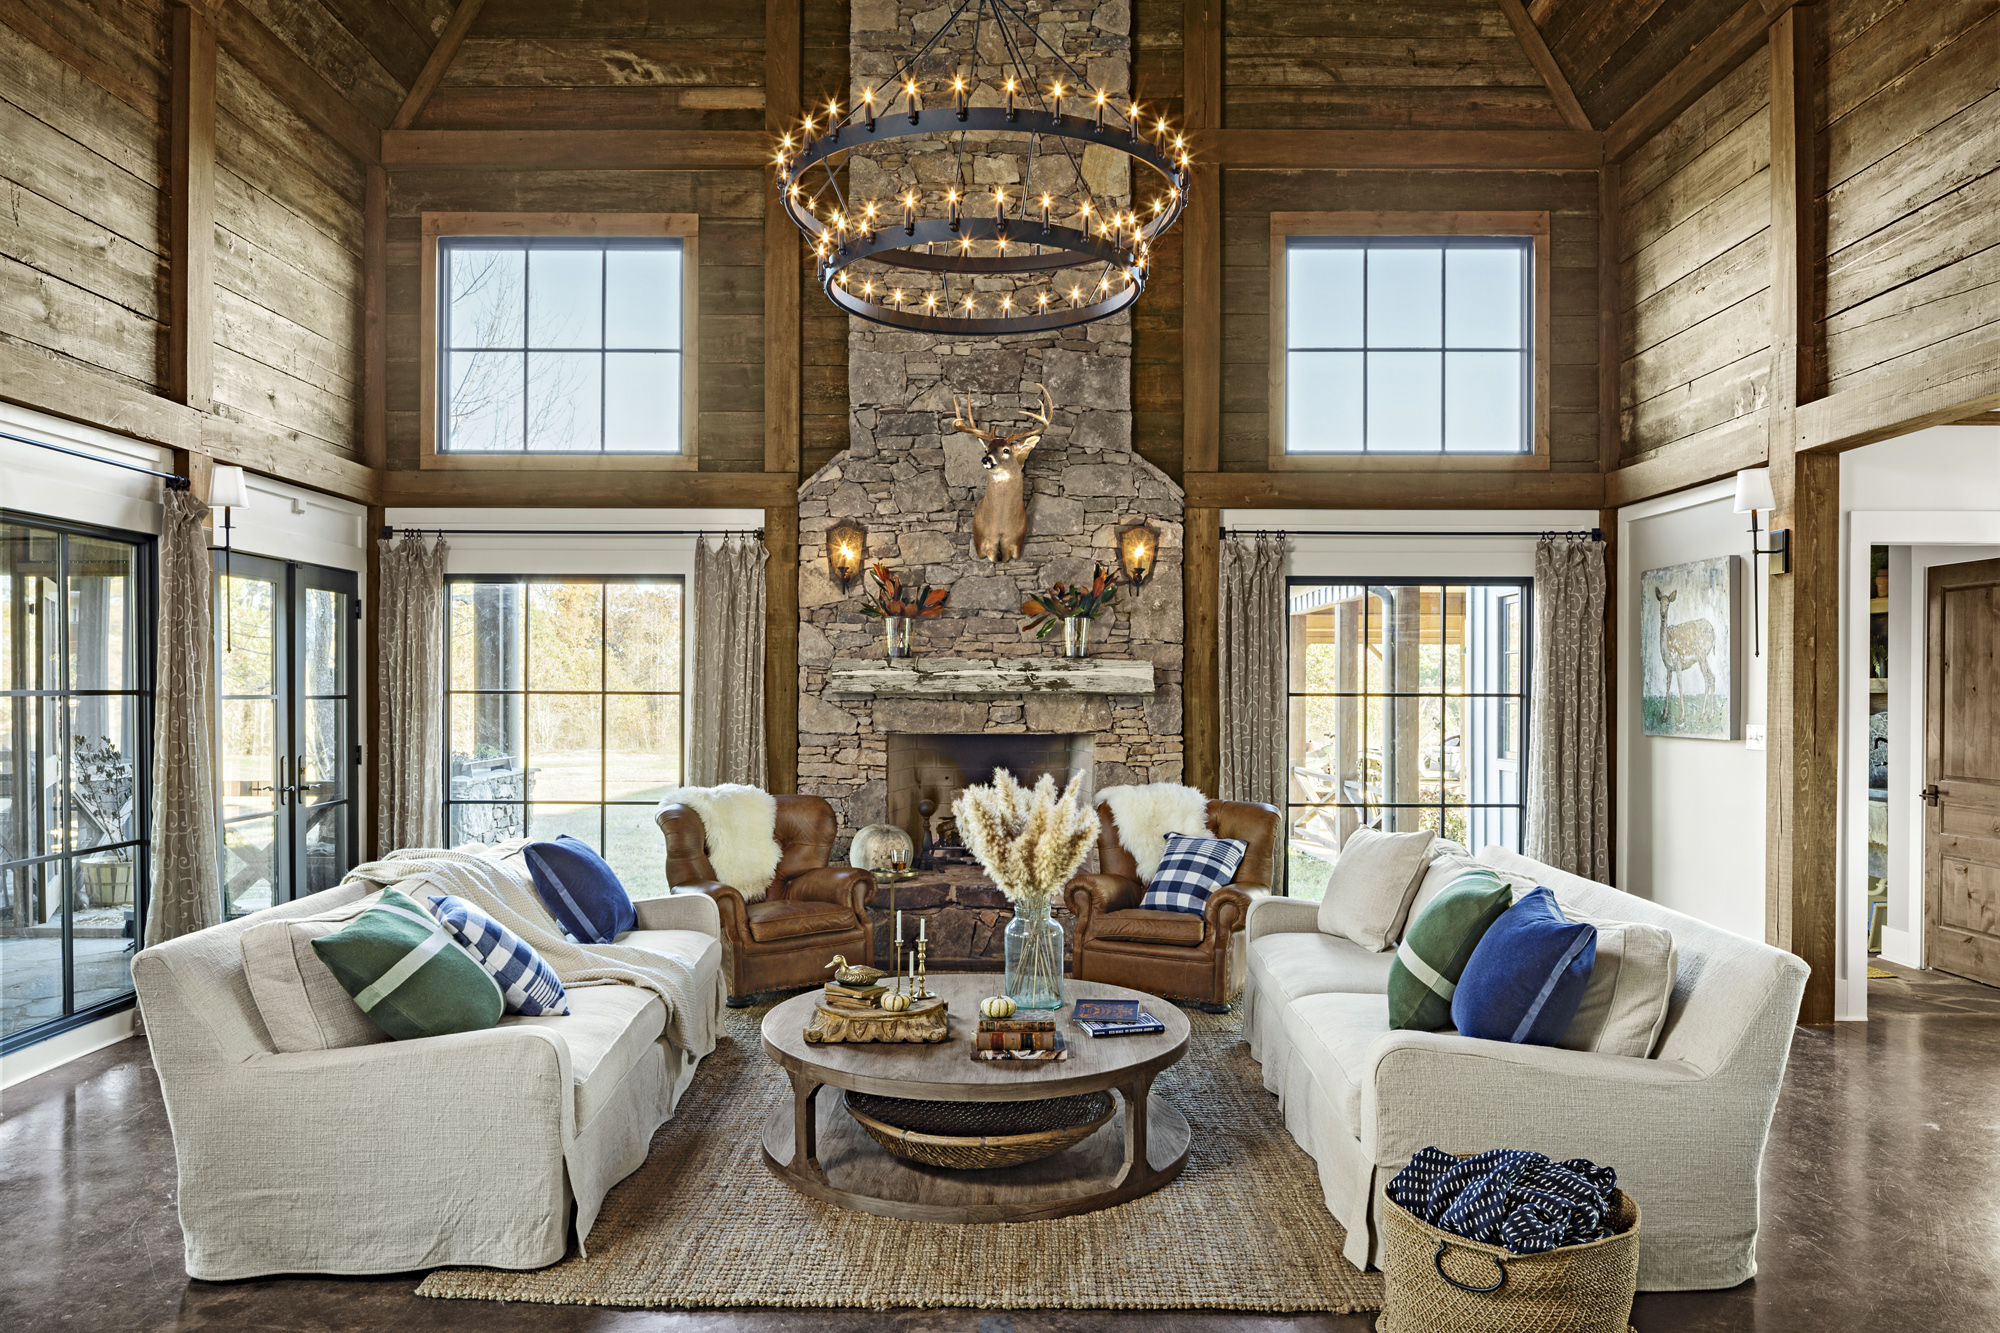 Living Room Decorating Ideas: Farmhouse Decorating Ideas